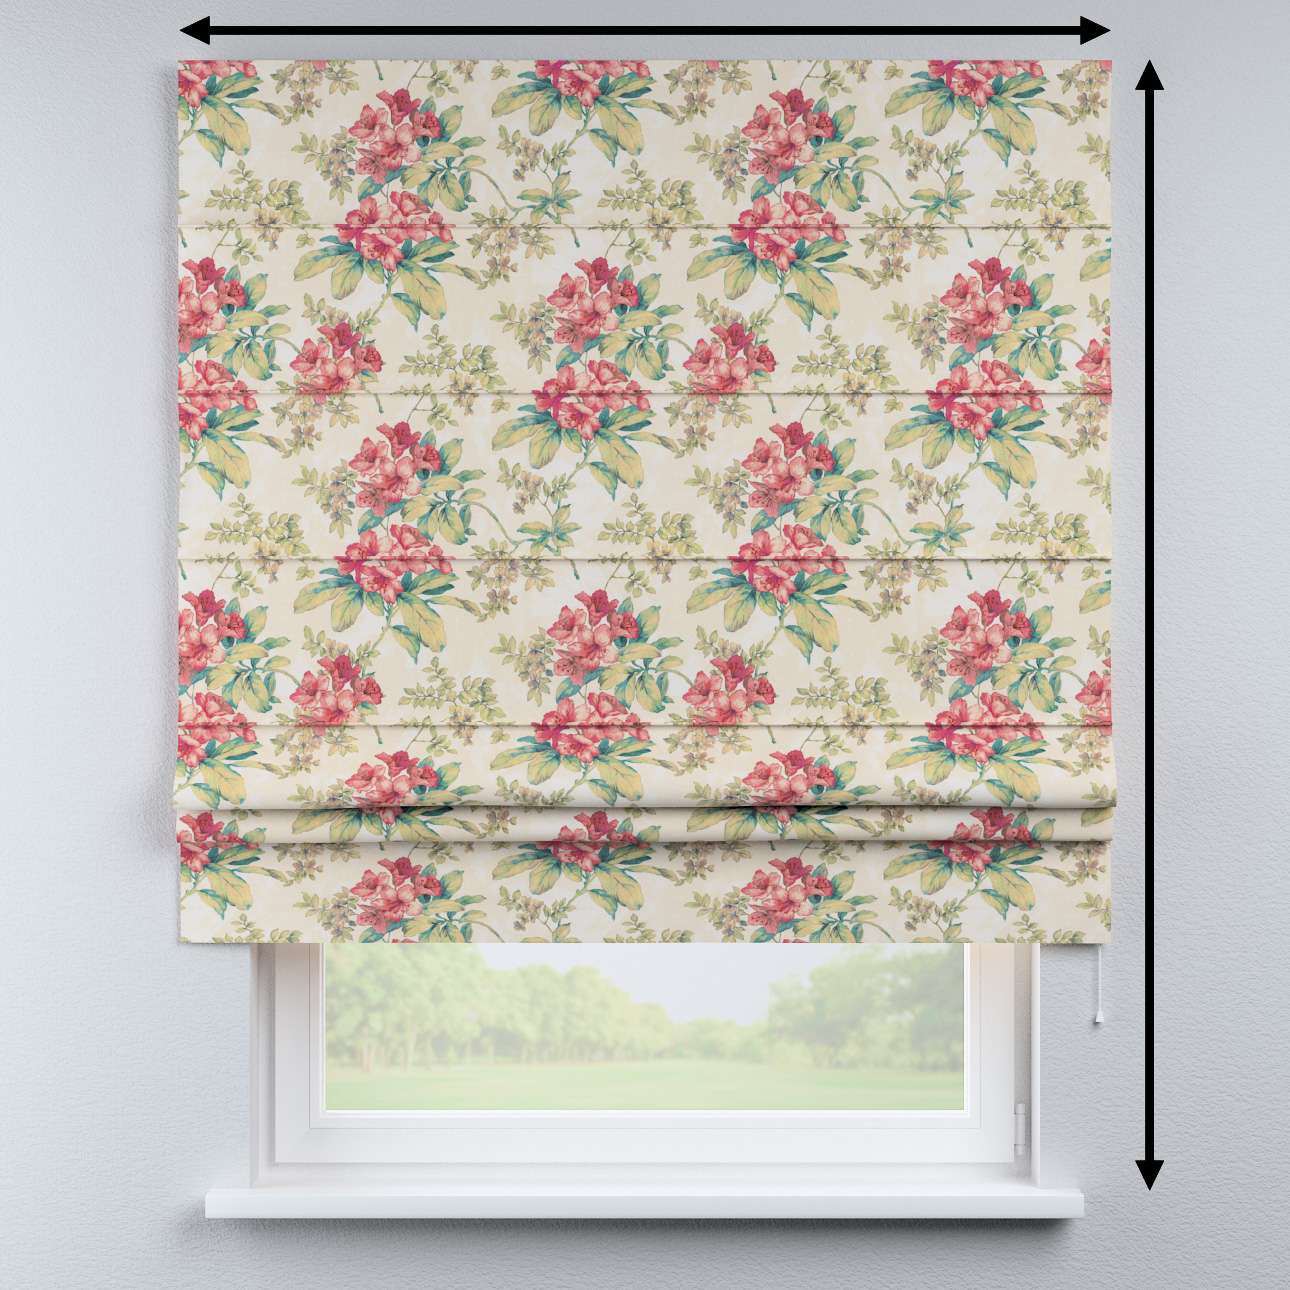 Padva roman blind in collection Londres, fabric: 143-40